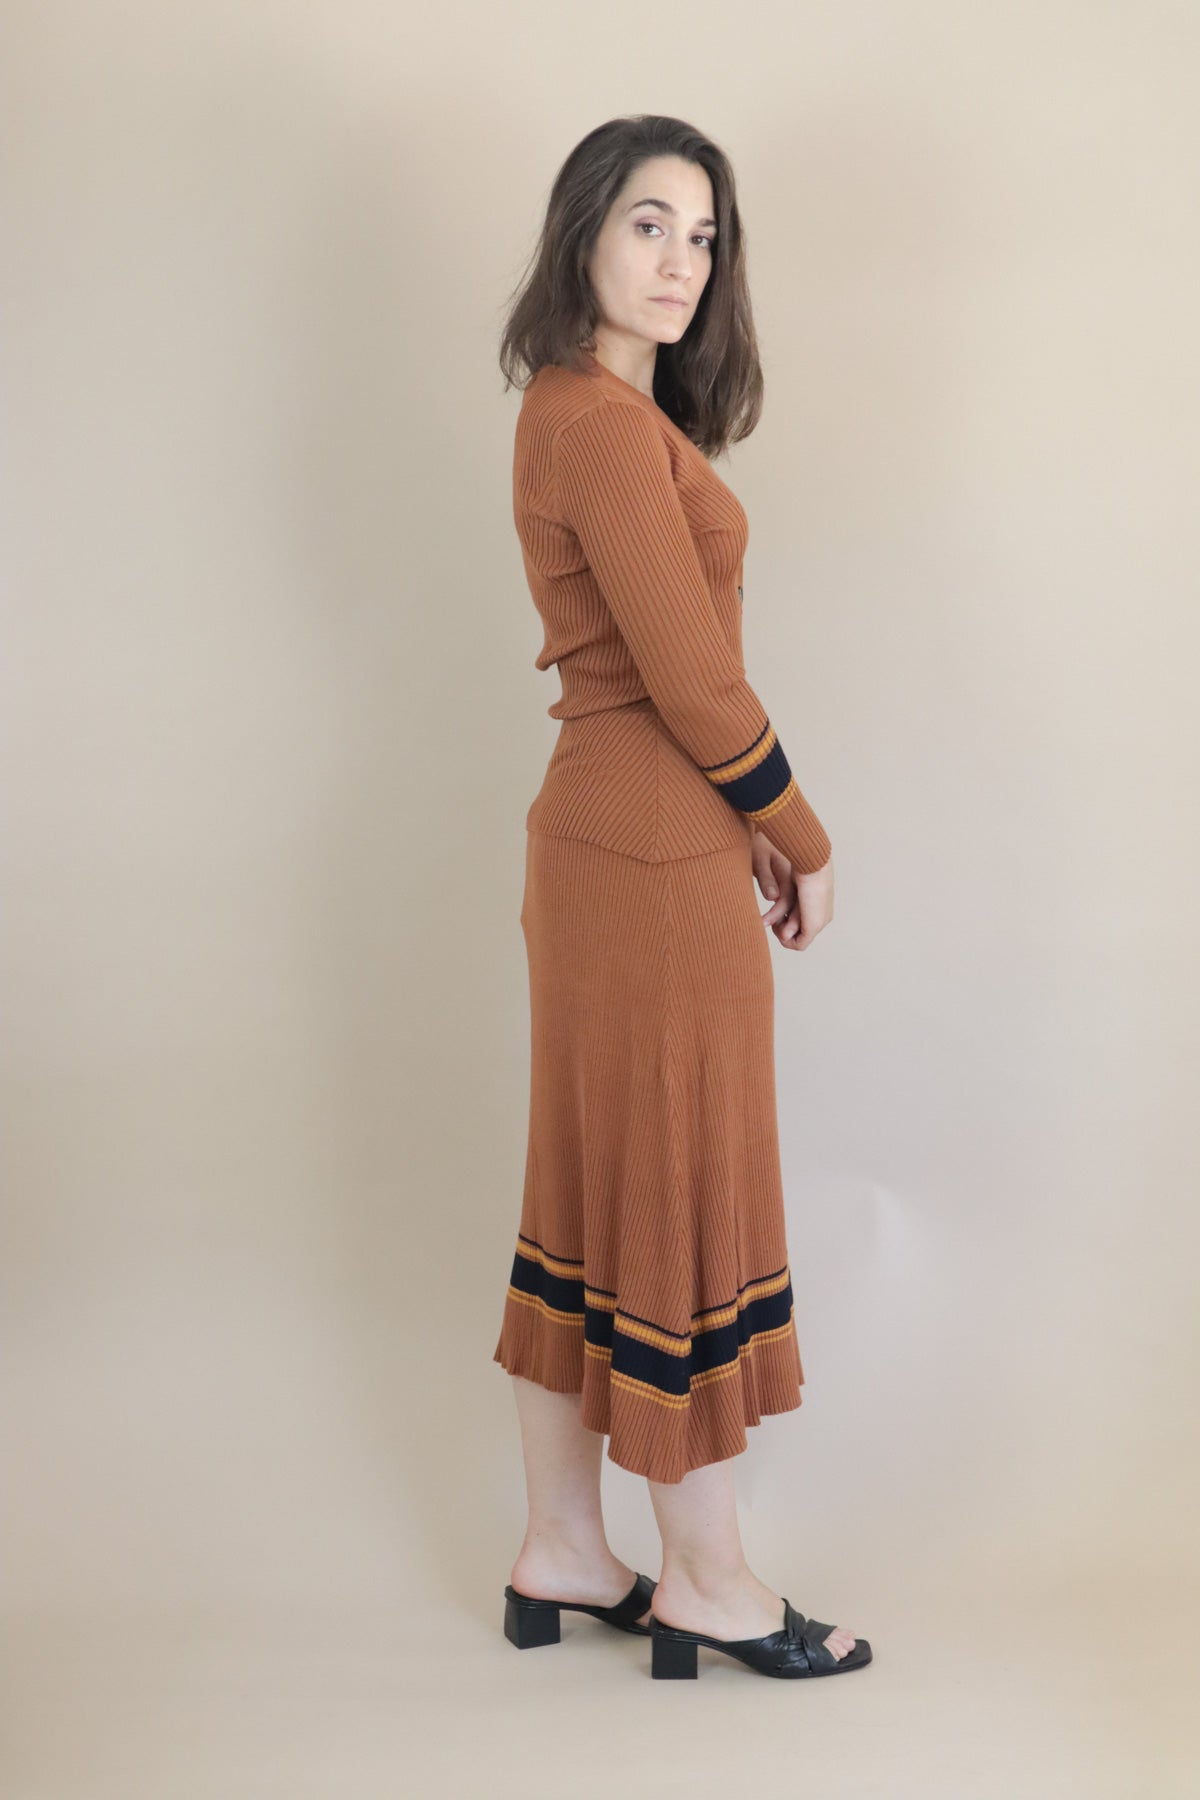 Vindis Skirt - Pumpkin Spice